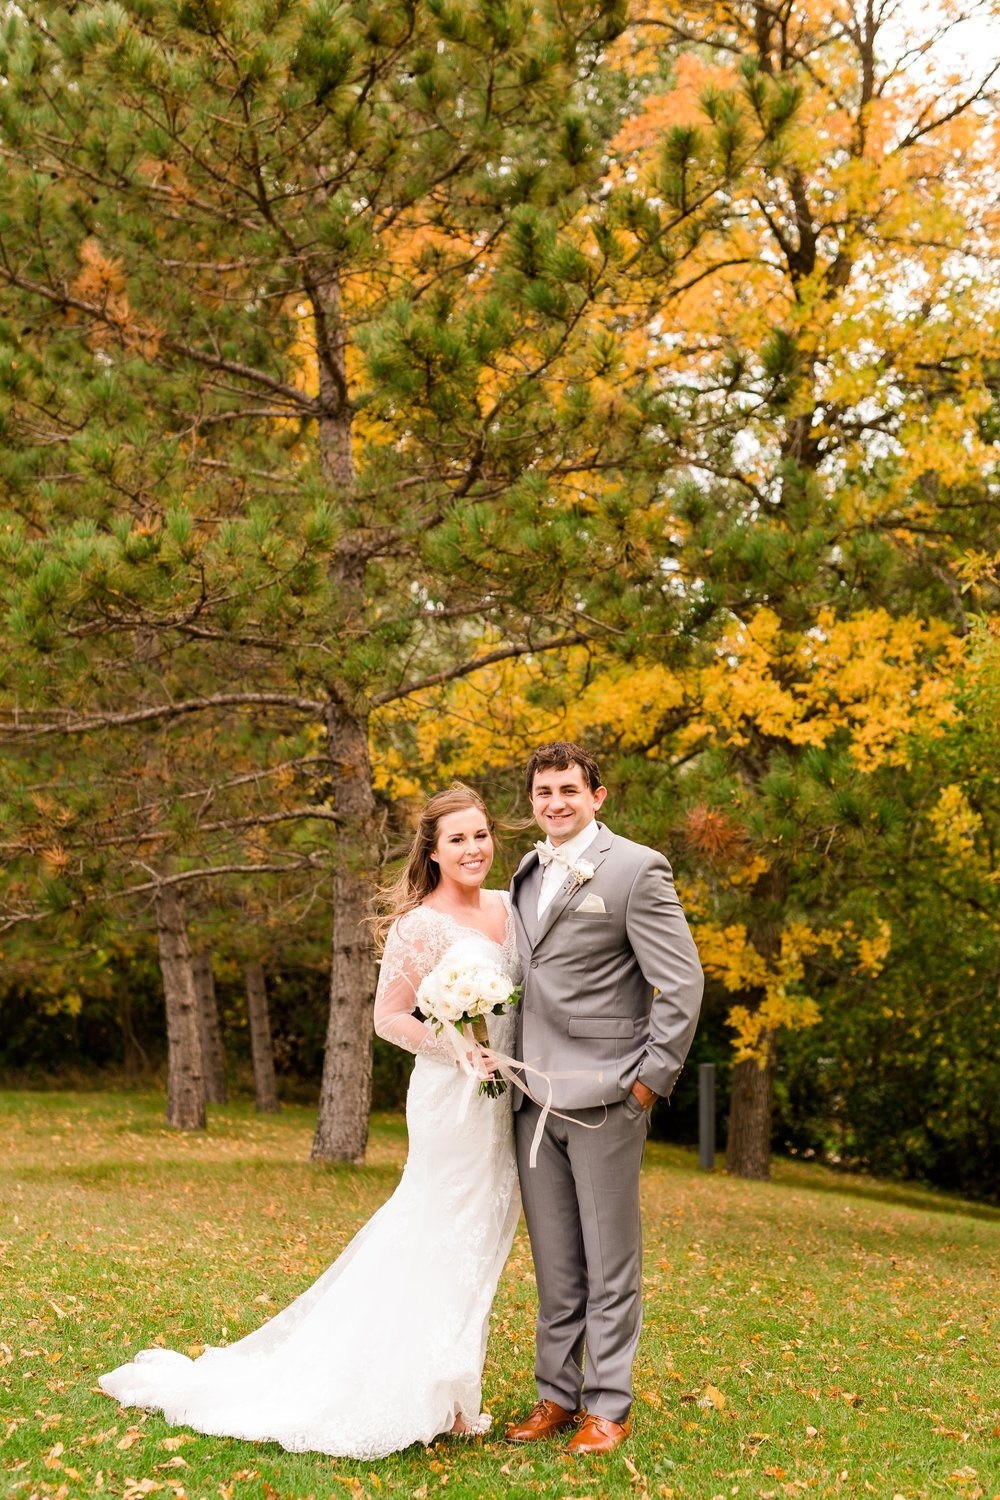 AmberLangerudPhotography_Fair Hills Resort Lakeside Wedding in Minnesota_3421.jpg